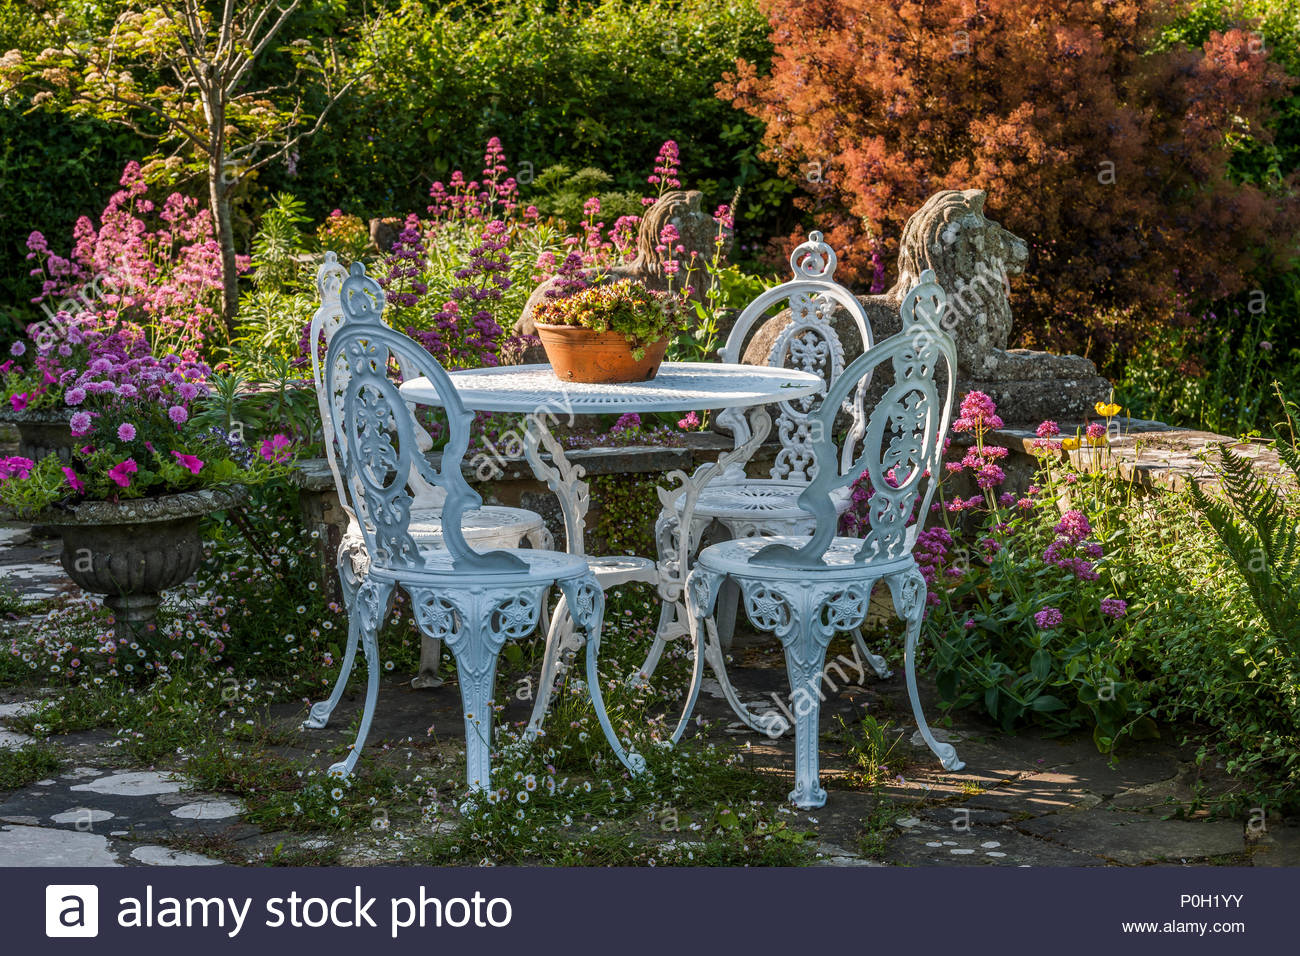 Patio table and chairs at Butlers Farmhouse - Stock Image